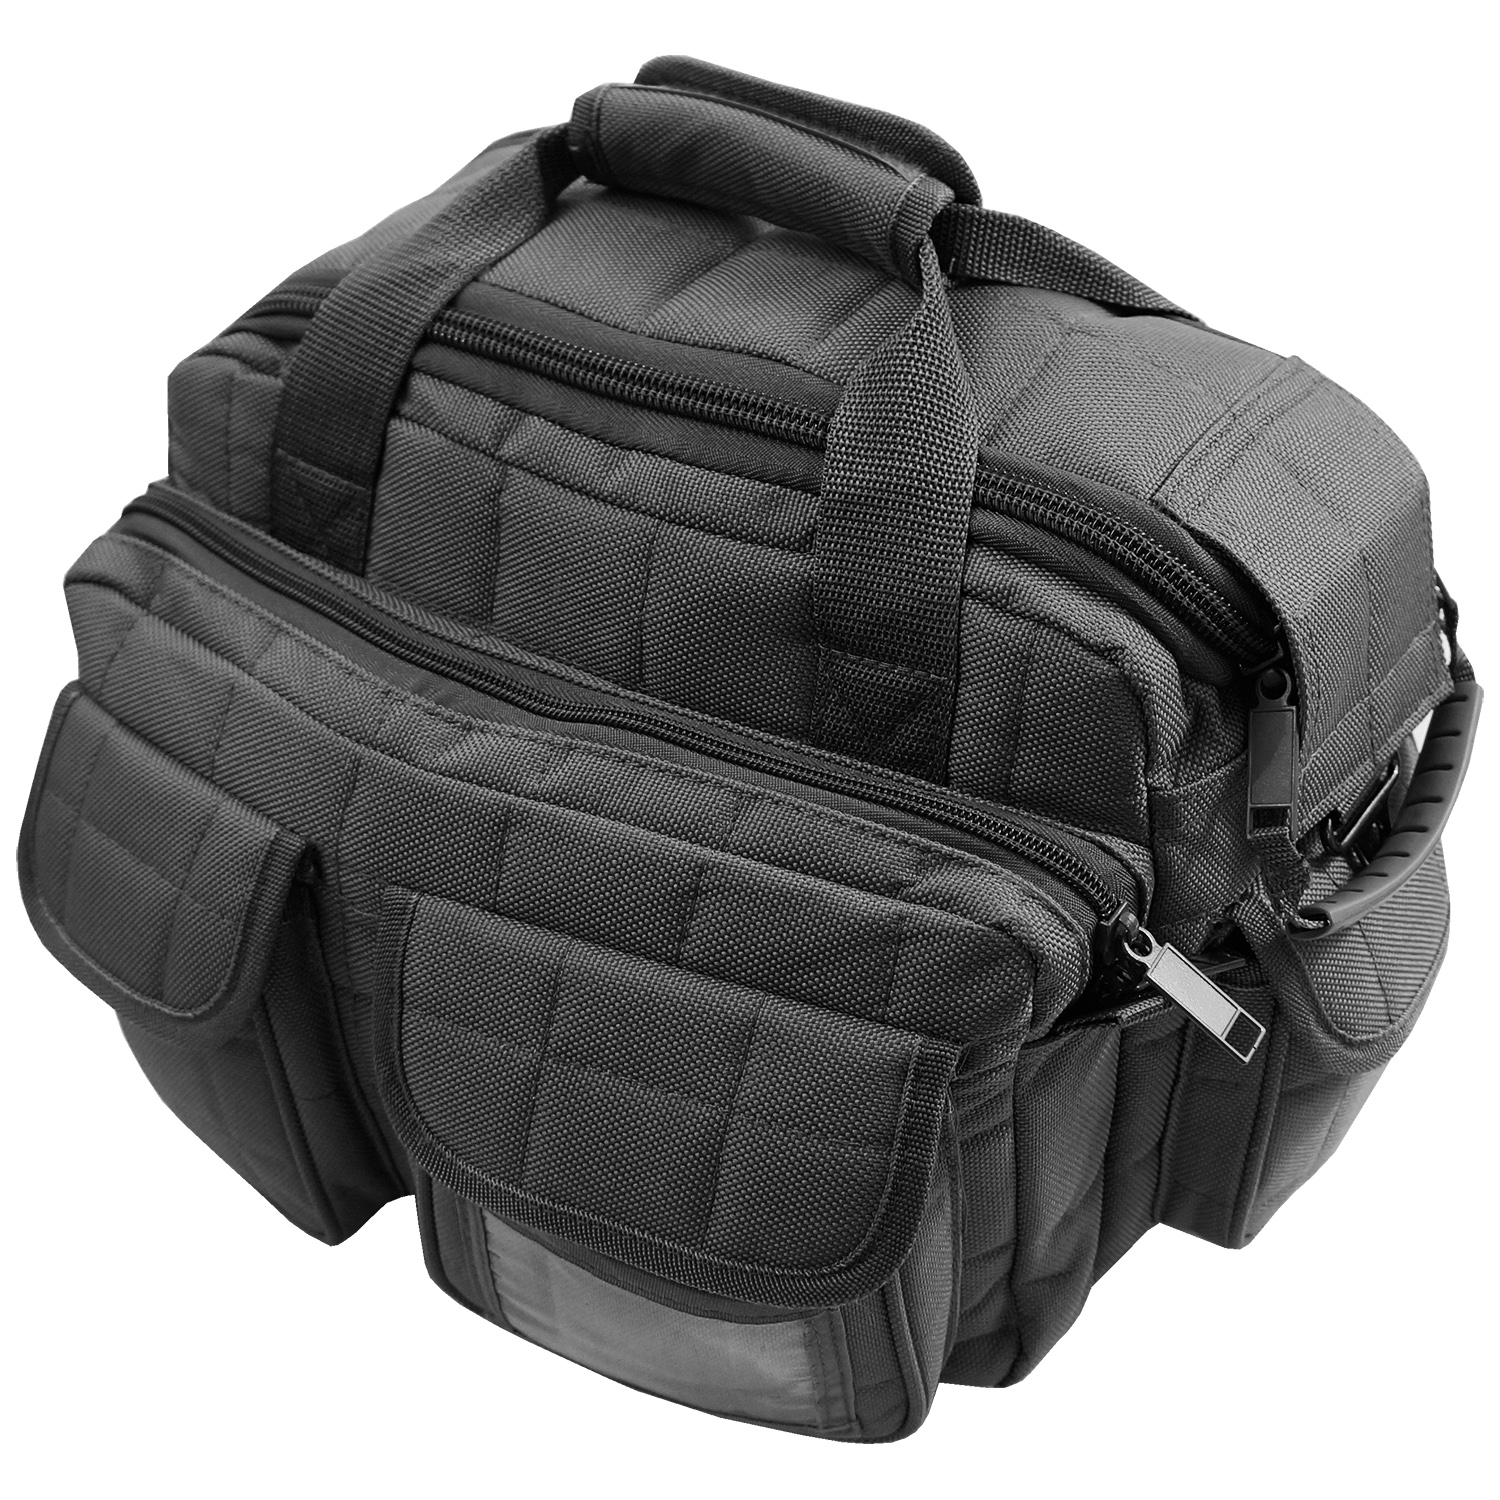 Every Day Carry Tactical Shoulder Messenger Pistol